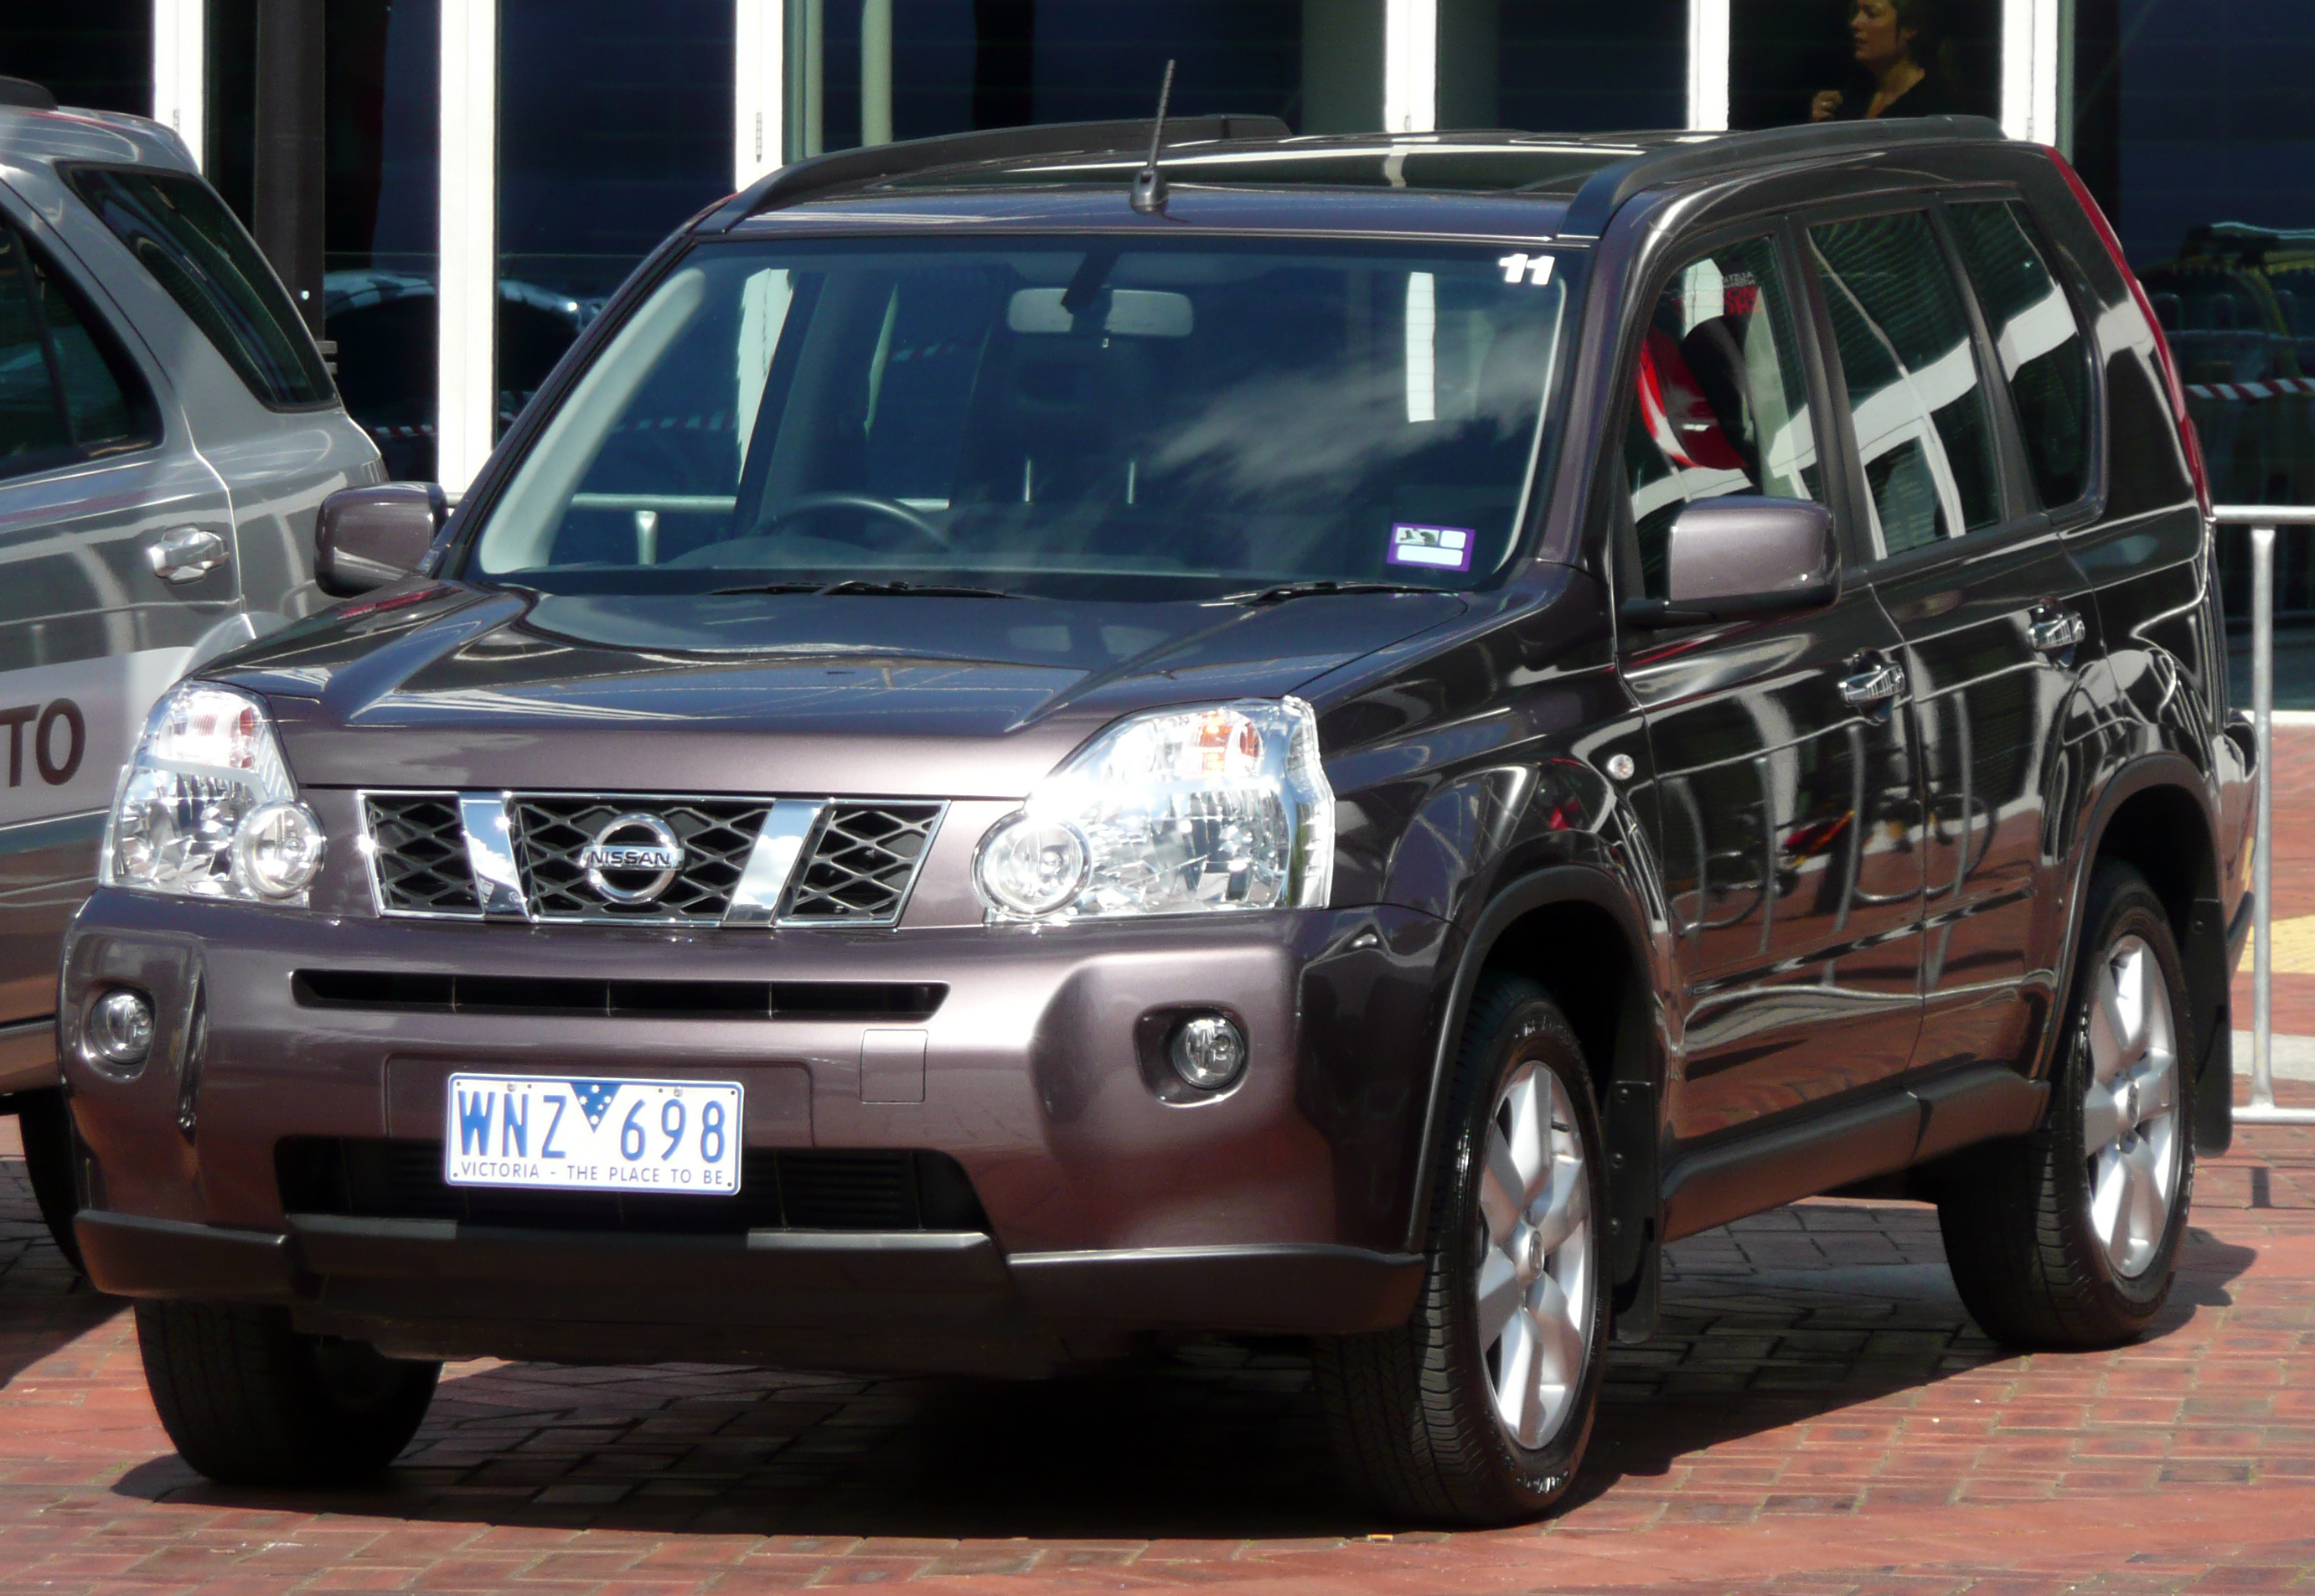 file 2008 nissan x trail t31 tl dci wagon 2008 10 09 wikimedia commons. Black Bedroom Furniture Sets. Home Design Ideas